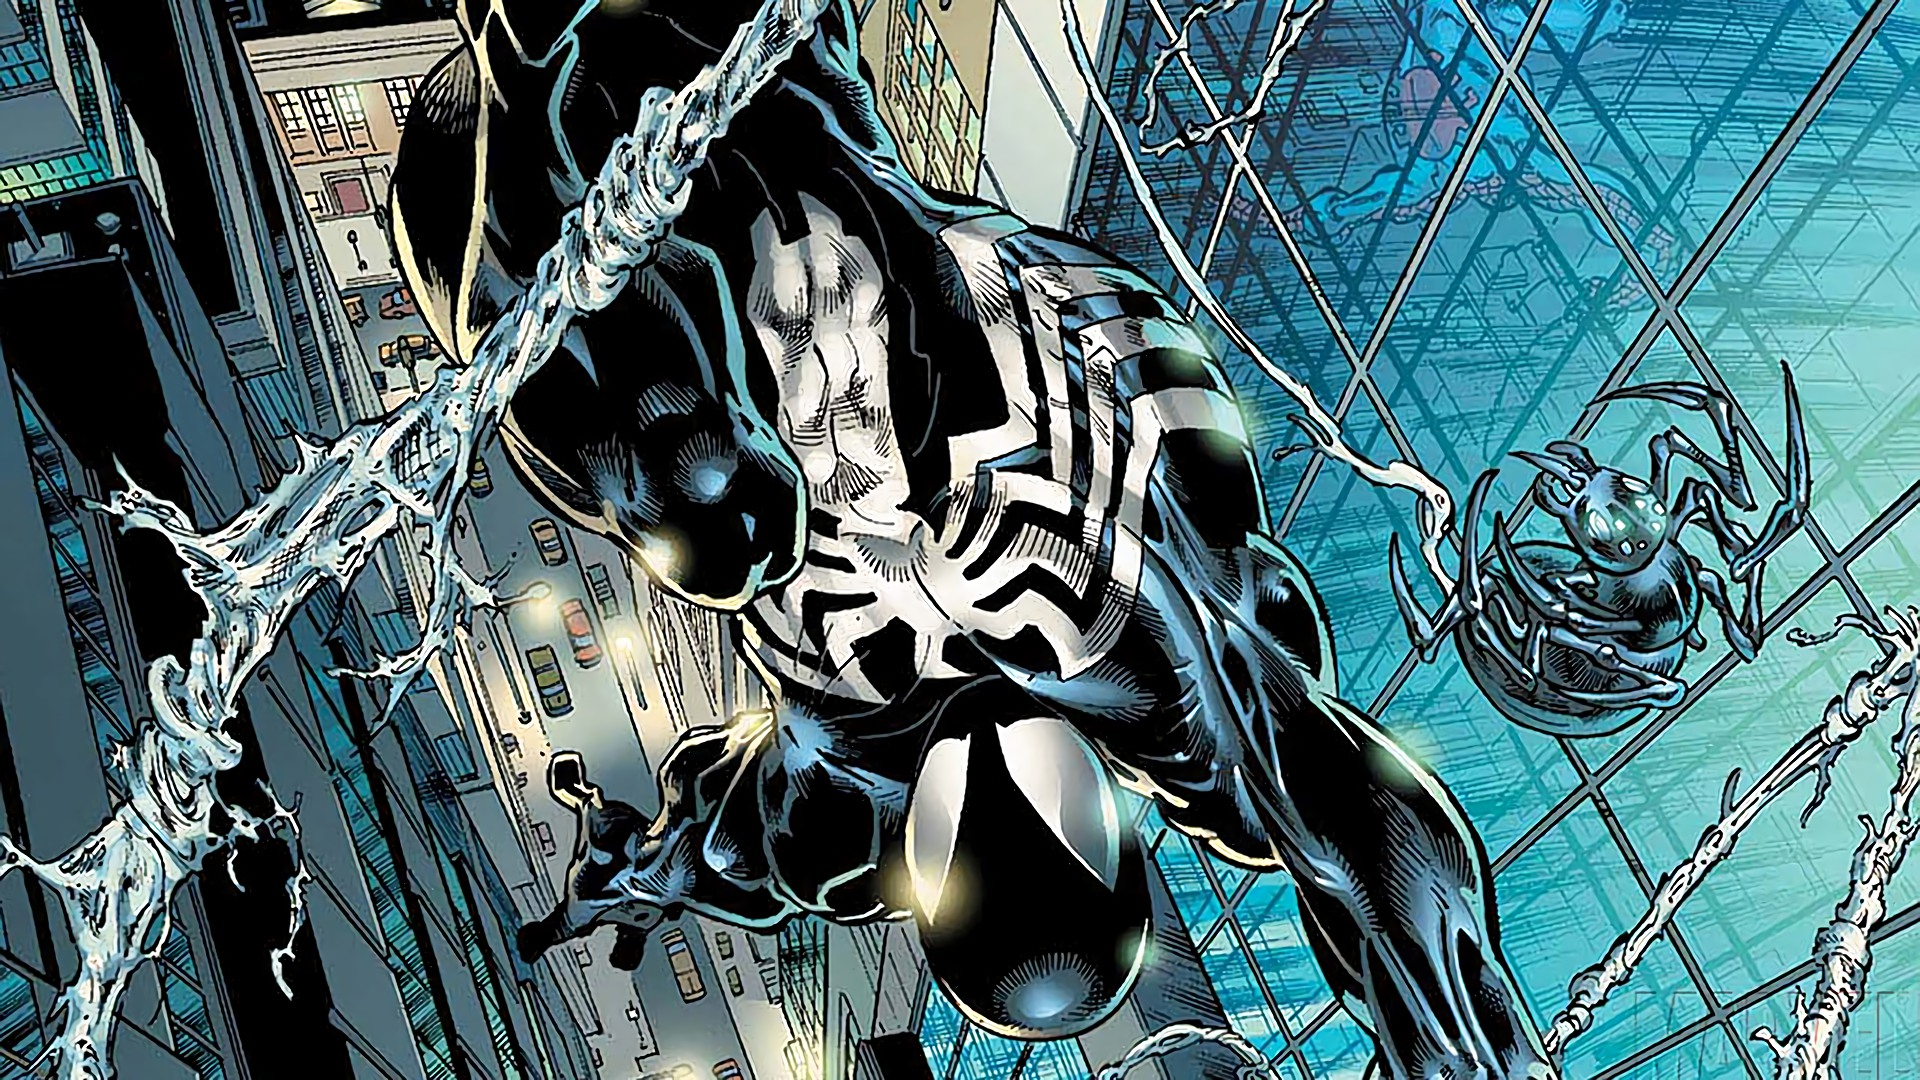 Black suit spiderman hd wallpaper background image - Black and white spiderman wallpaper ...